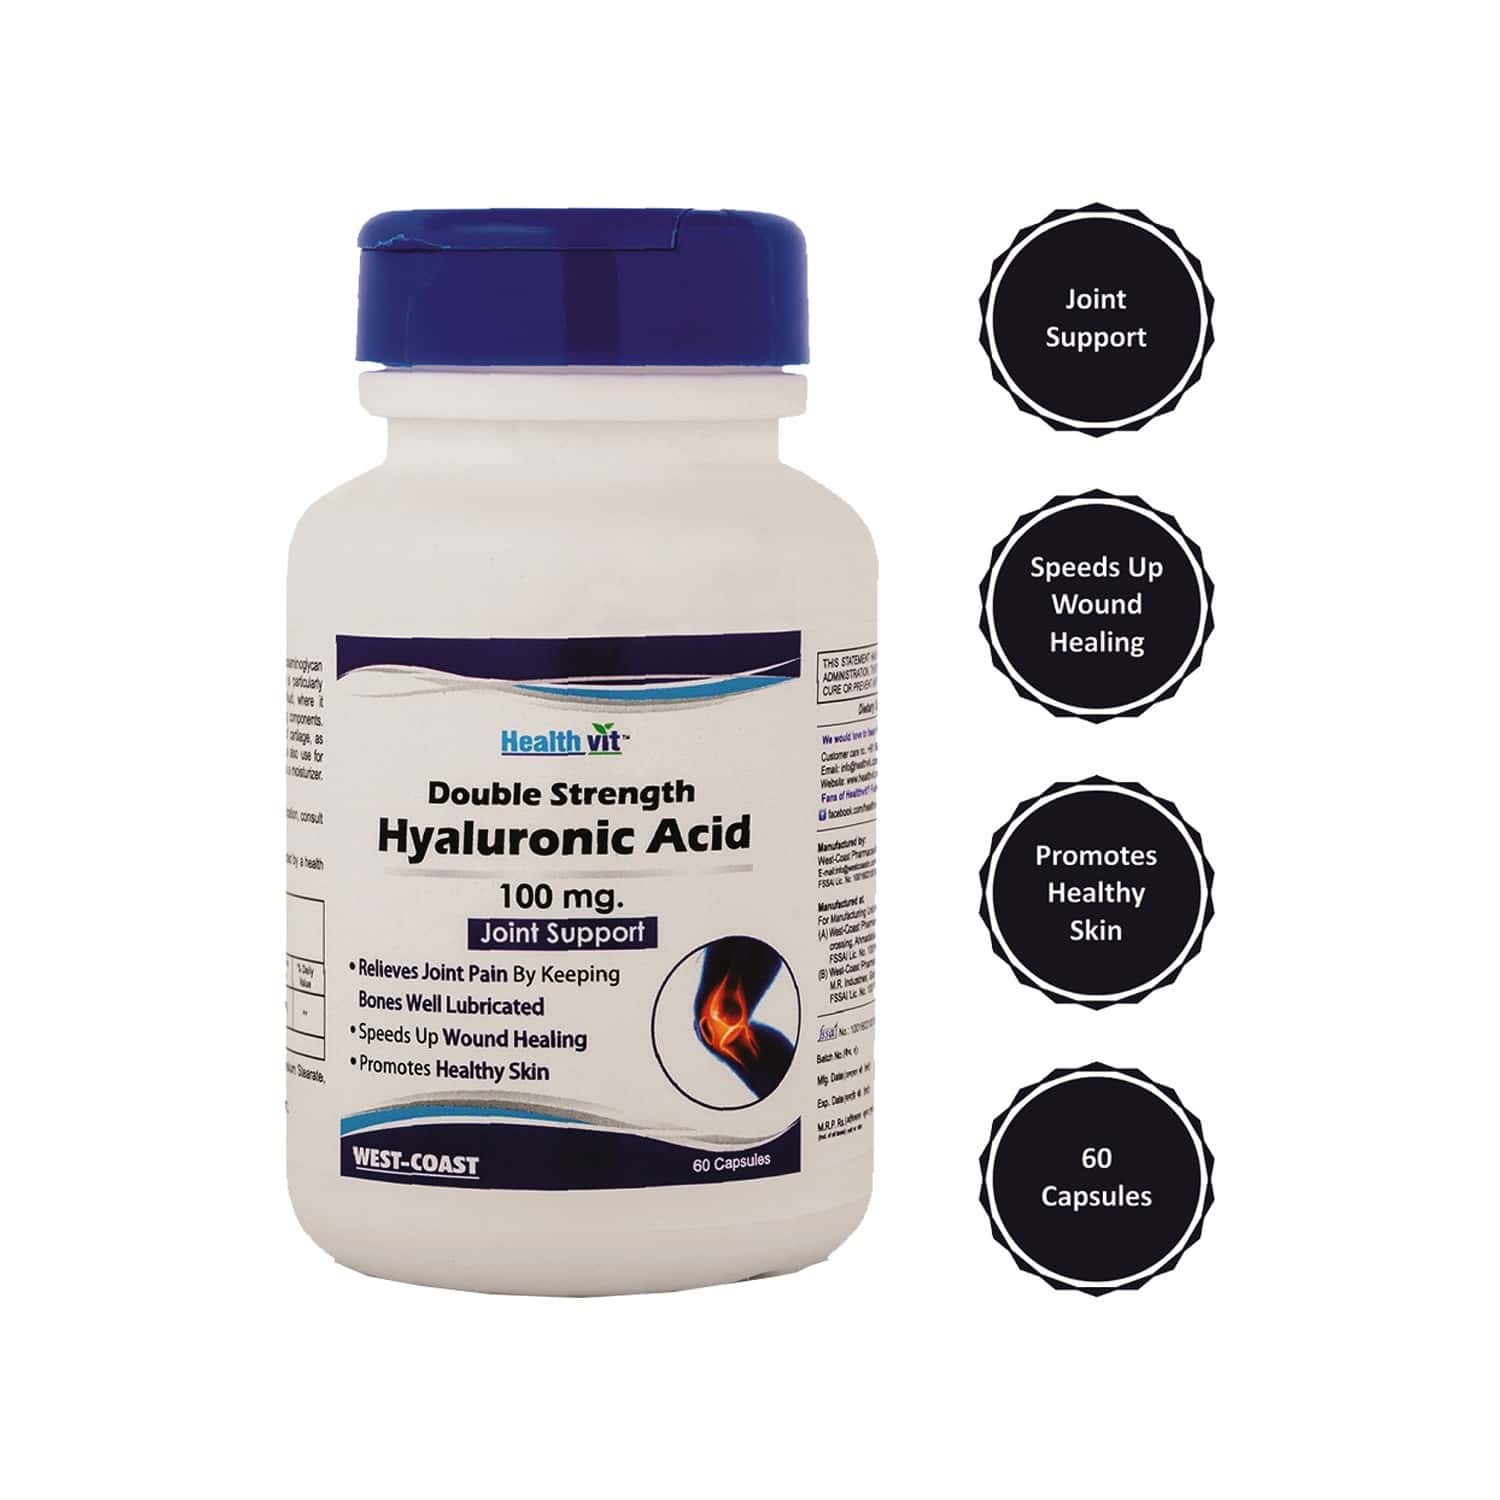 Healthvit Double Strength Hyaluronic Acid 100 Mg, Support Healthy Connective Tissue And Joints - Promote Youthful Healthy Skin - 60 Capsules